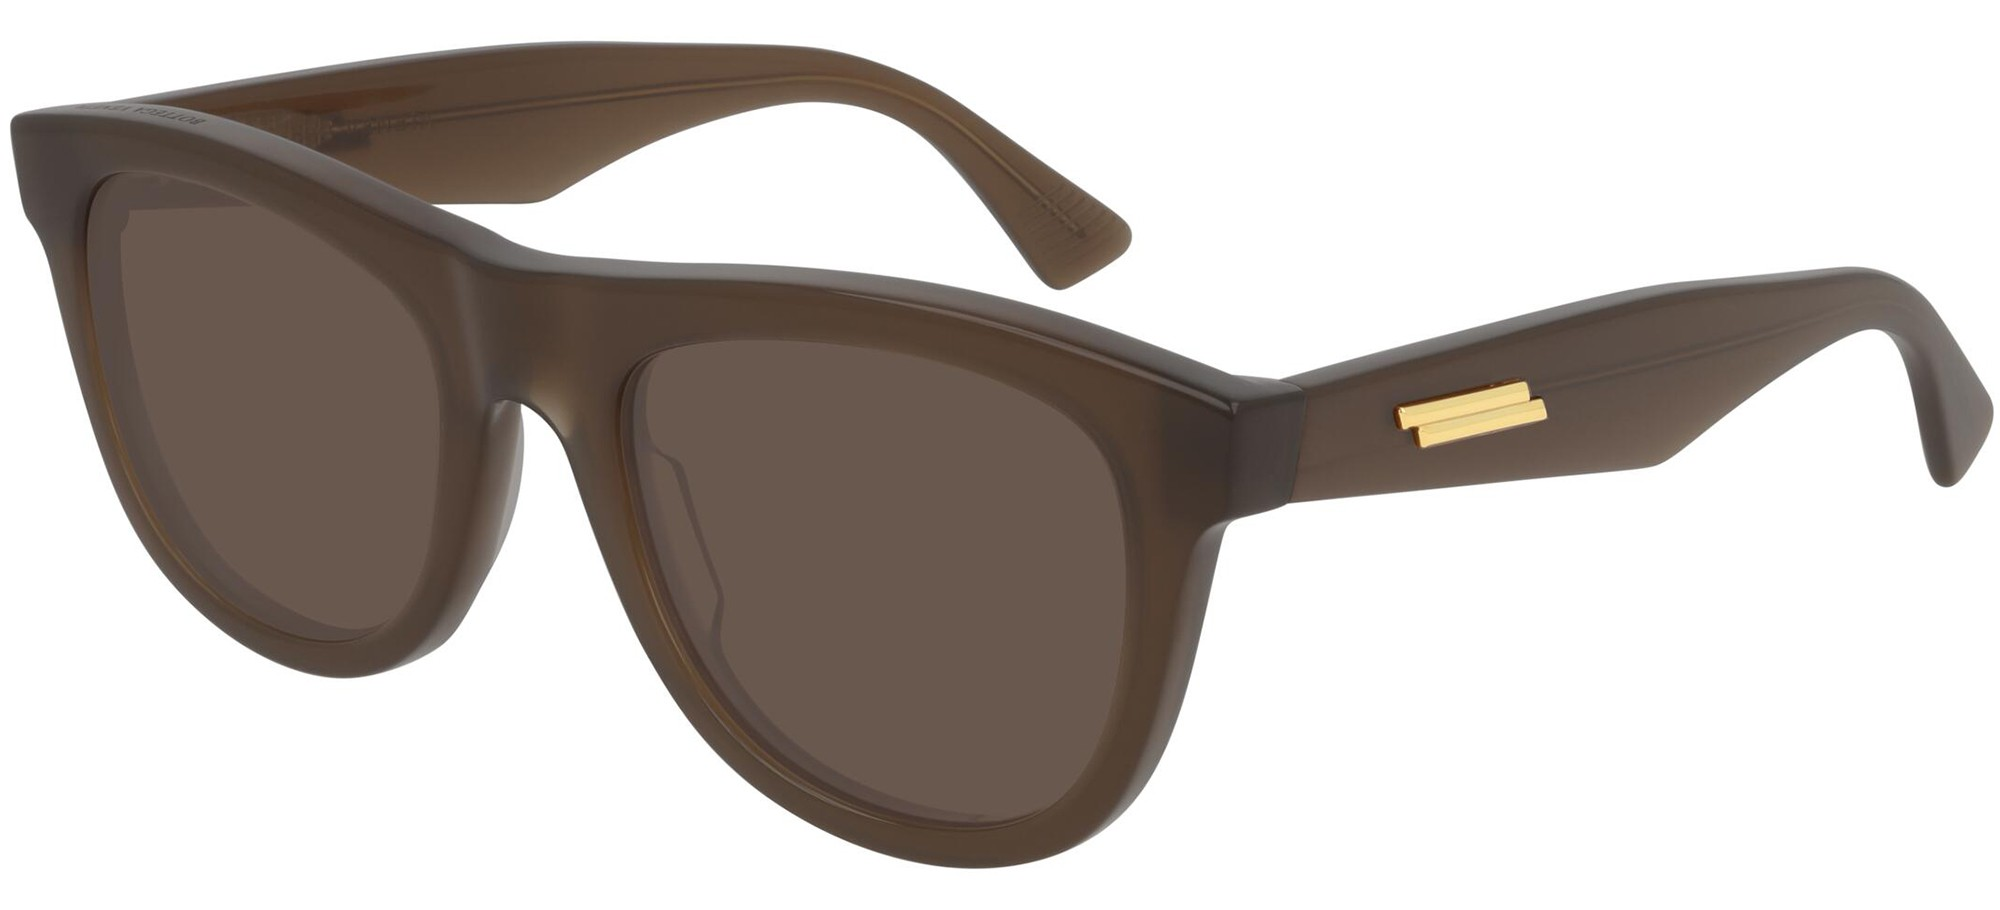 Bottega Veneta sunglasses BV1001S